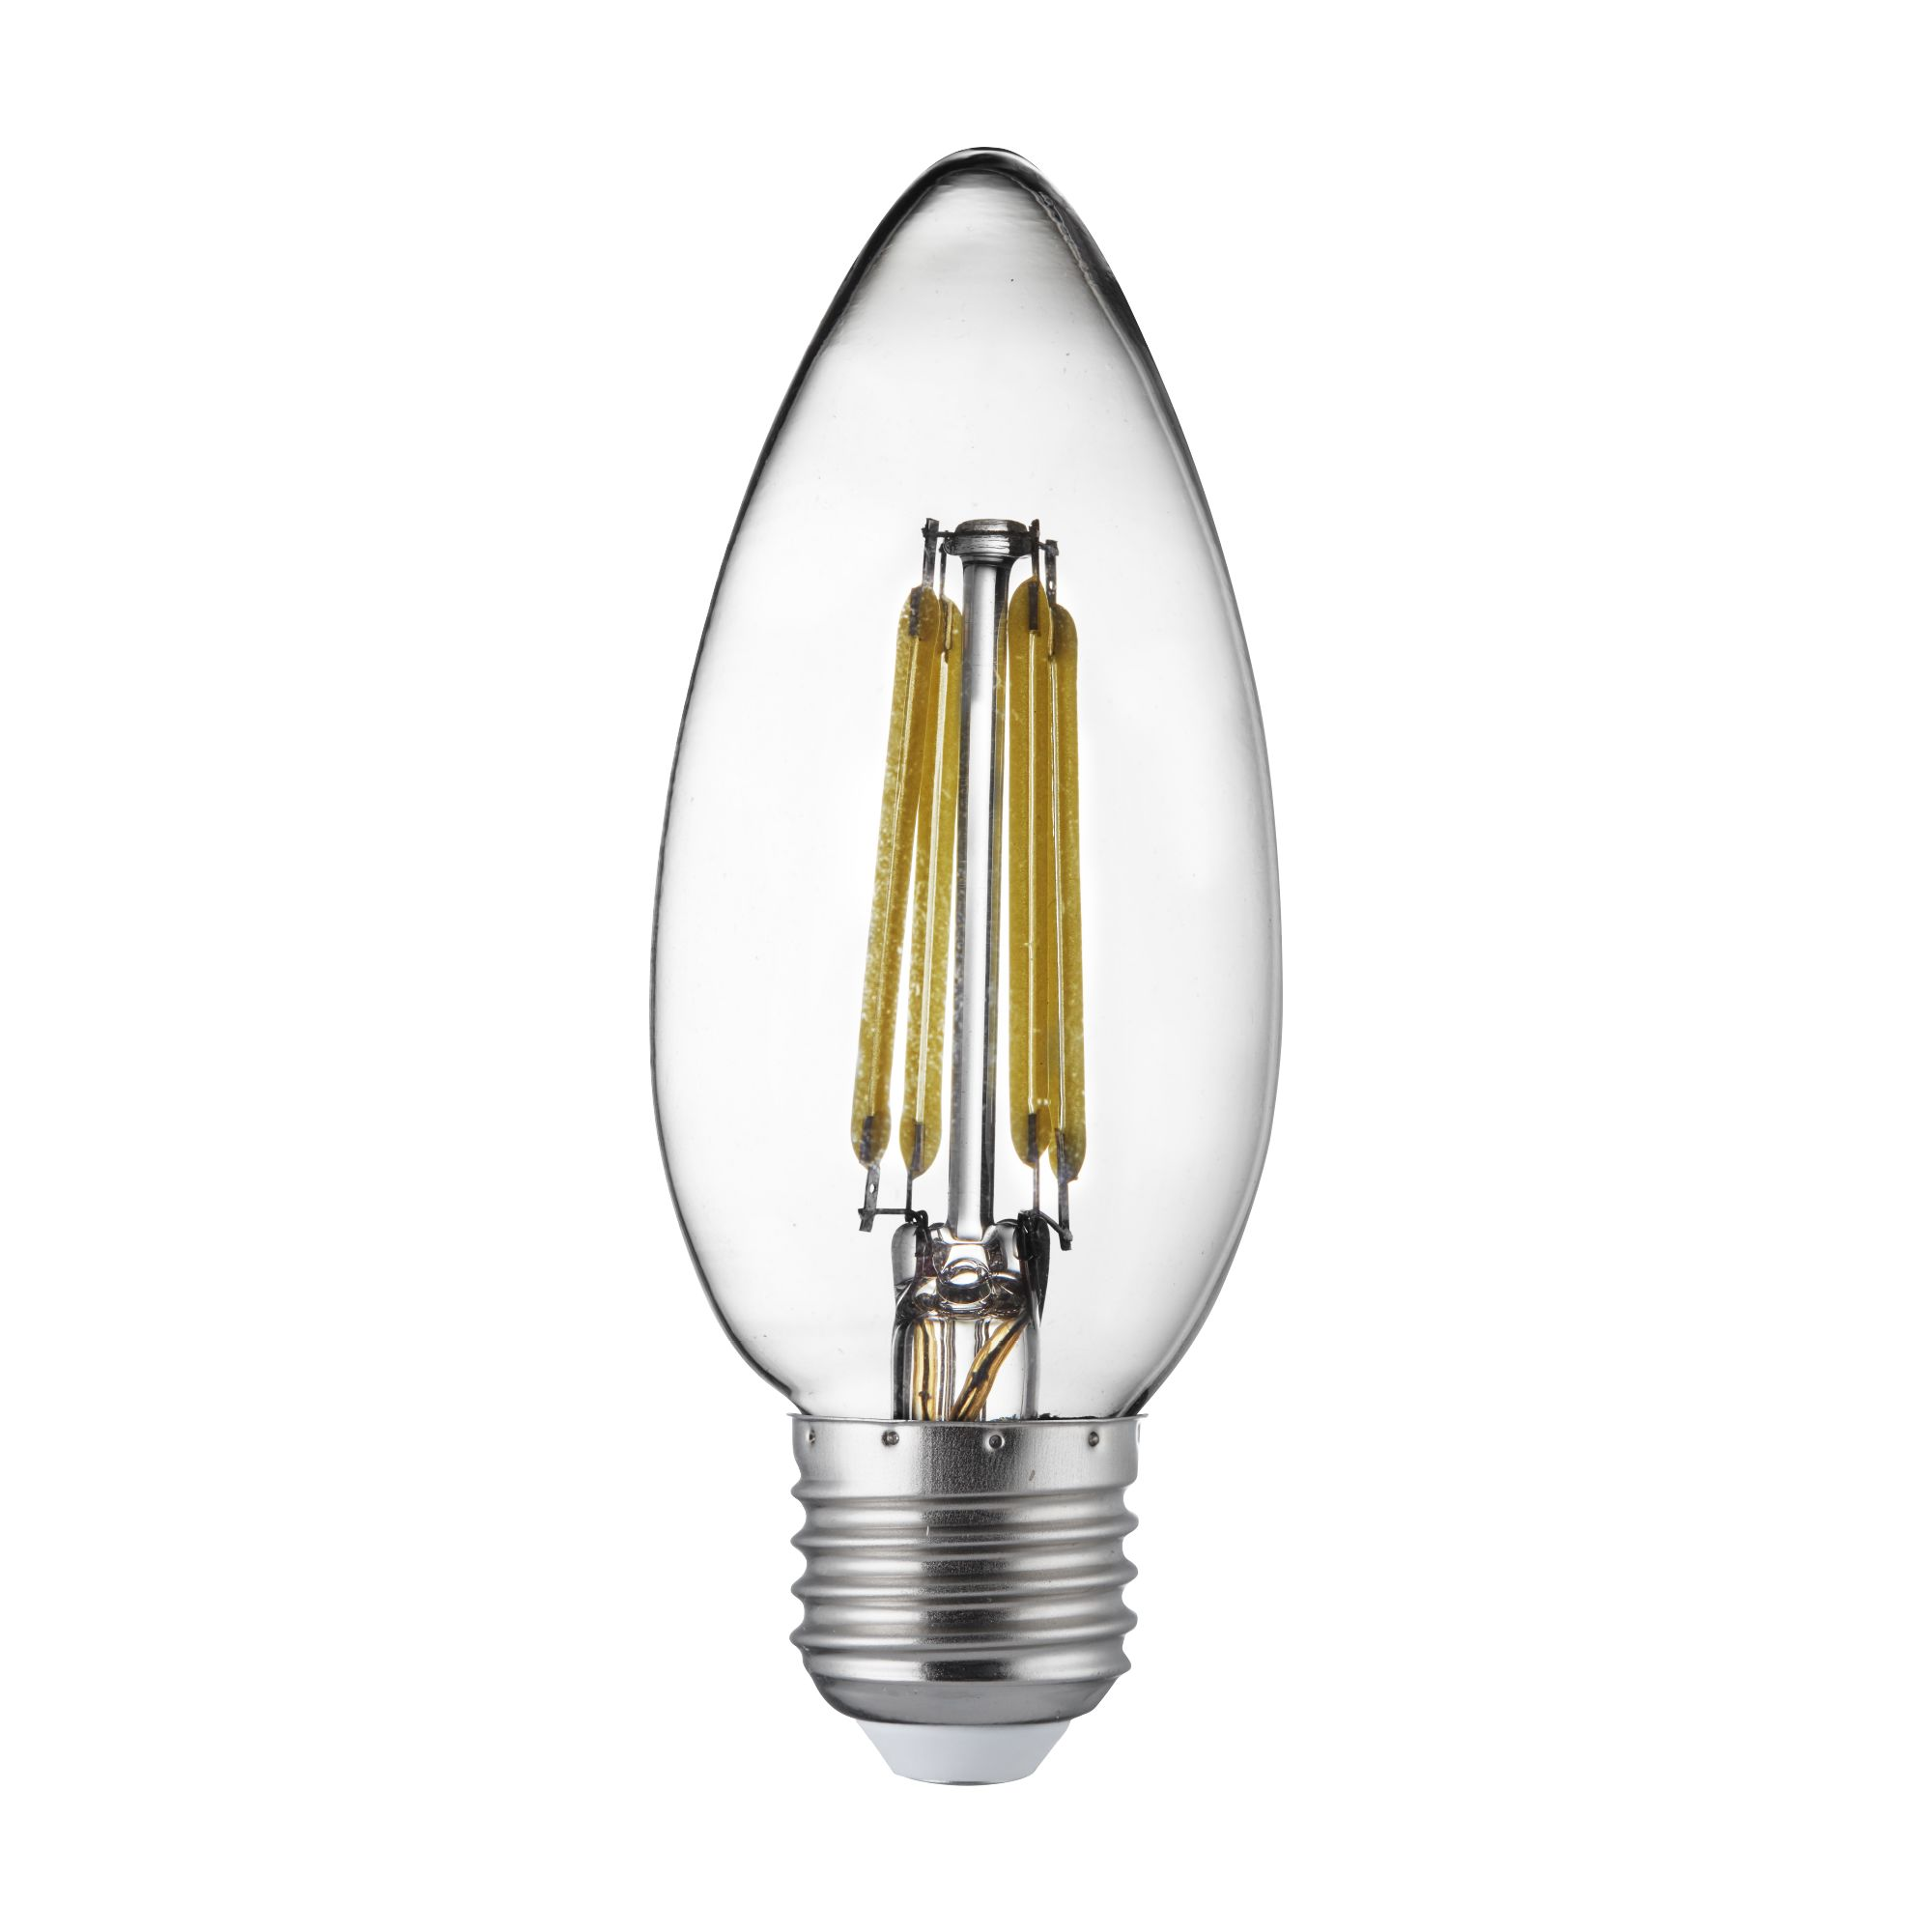 Pack X 10 - Dimmable E27 Led Filament Candle Lamp - 4.5w, 400lm, Warm White 2700